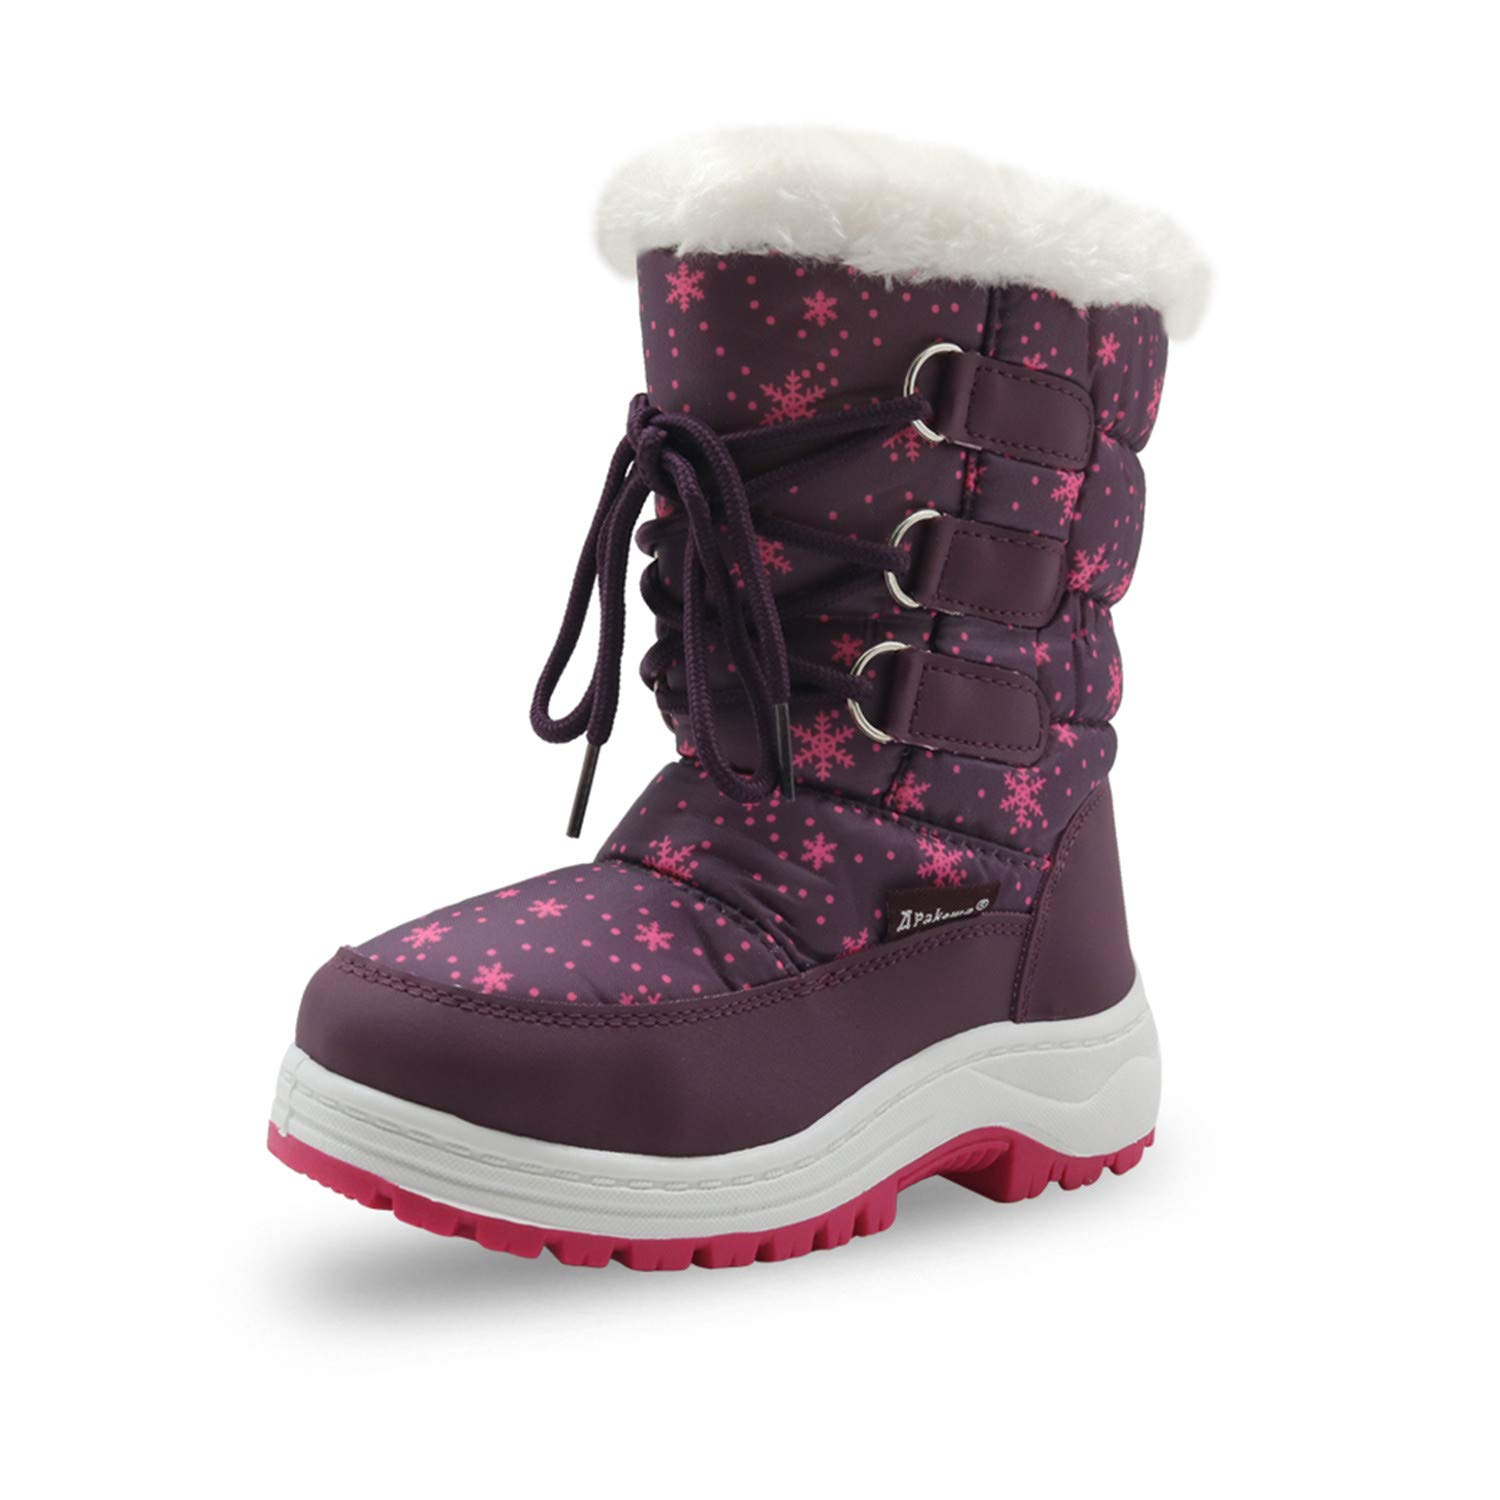 Winter Girls Mid-Calf Plush Snow Boots Little Princess Outdoor Durable Boots with Zipper Toddler Kids Anti-Slip Shoes